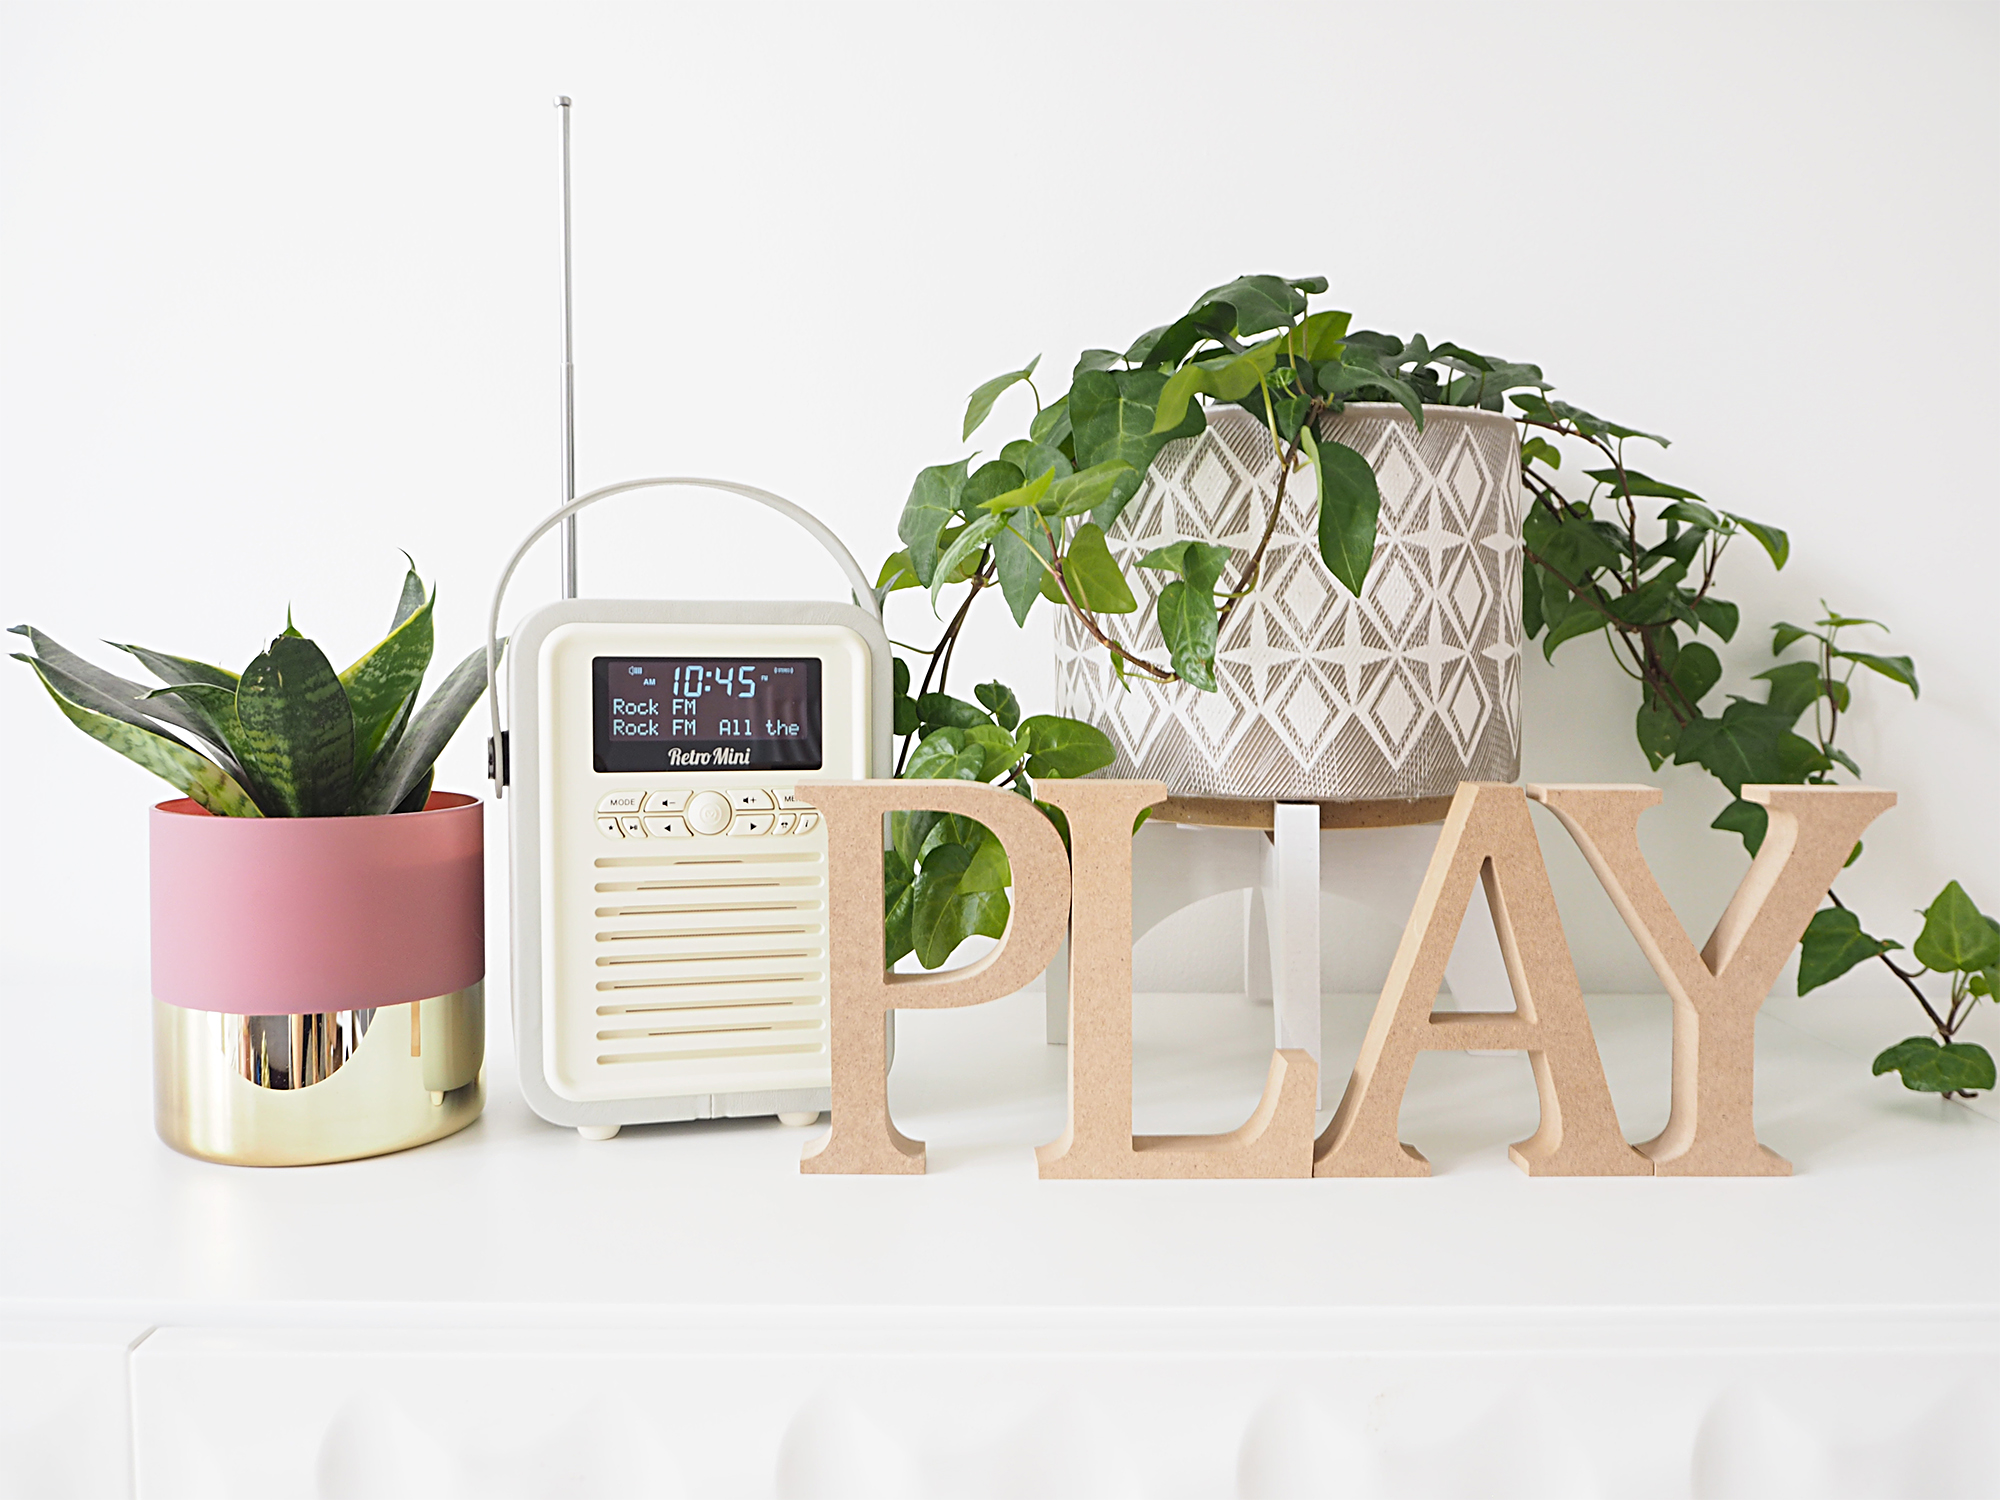 QV mini retro radio grey from QVC UK